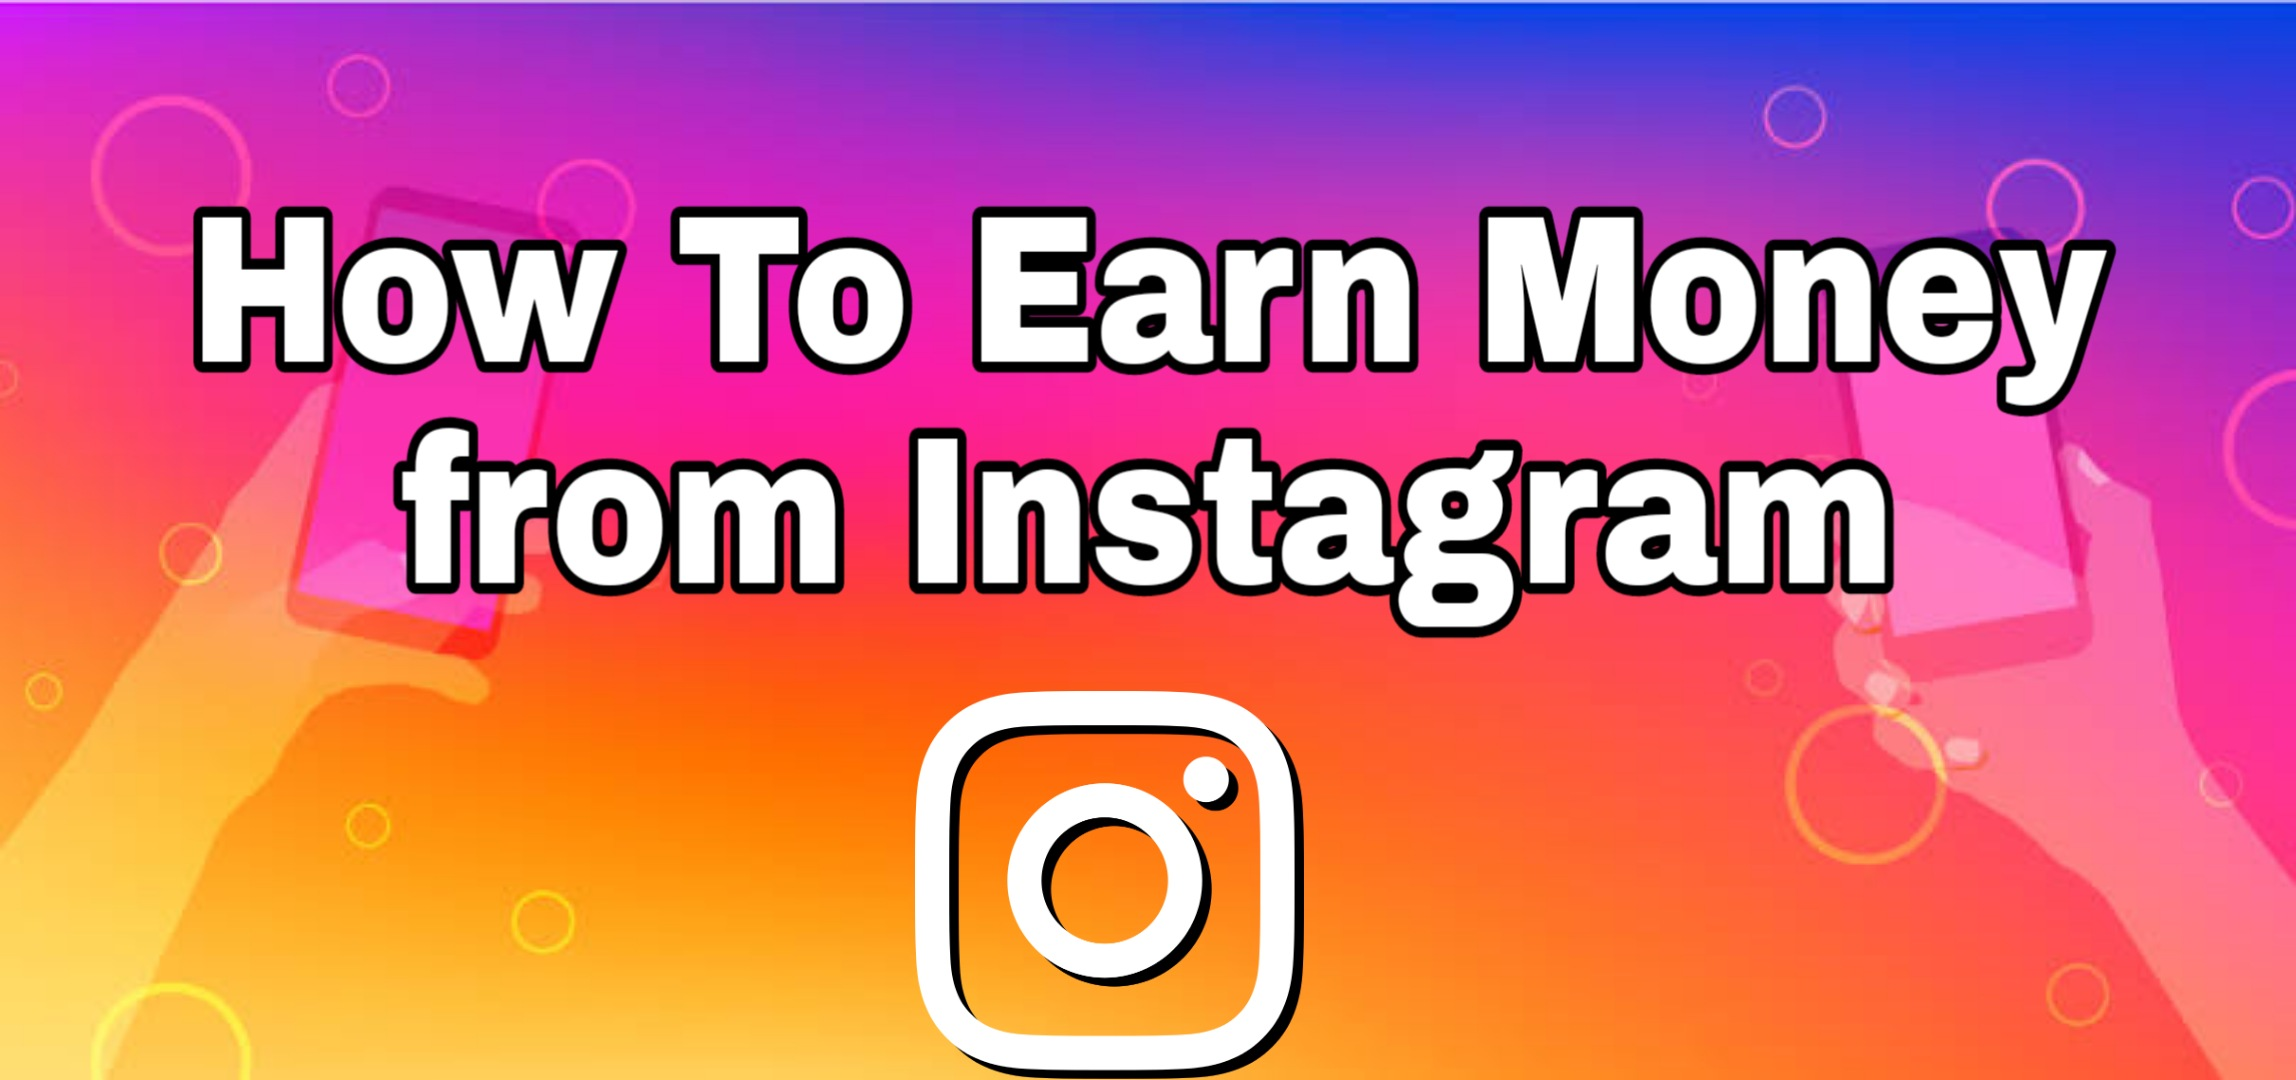 How to Earn Money from Instagram 2021